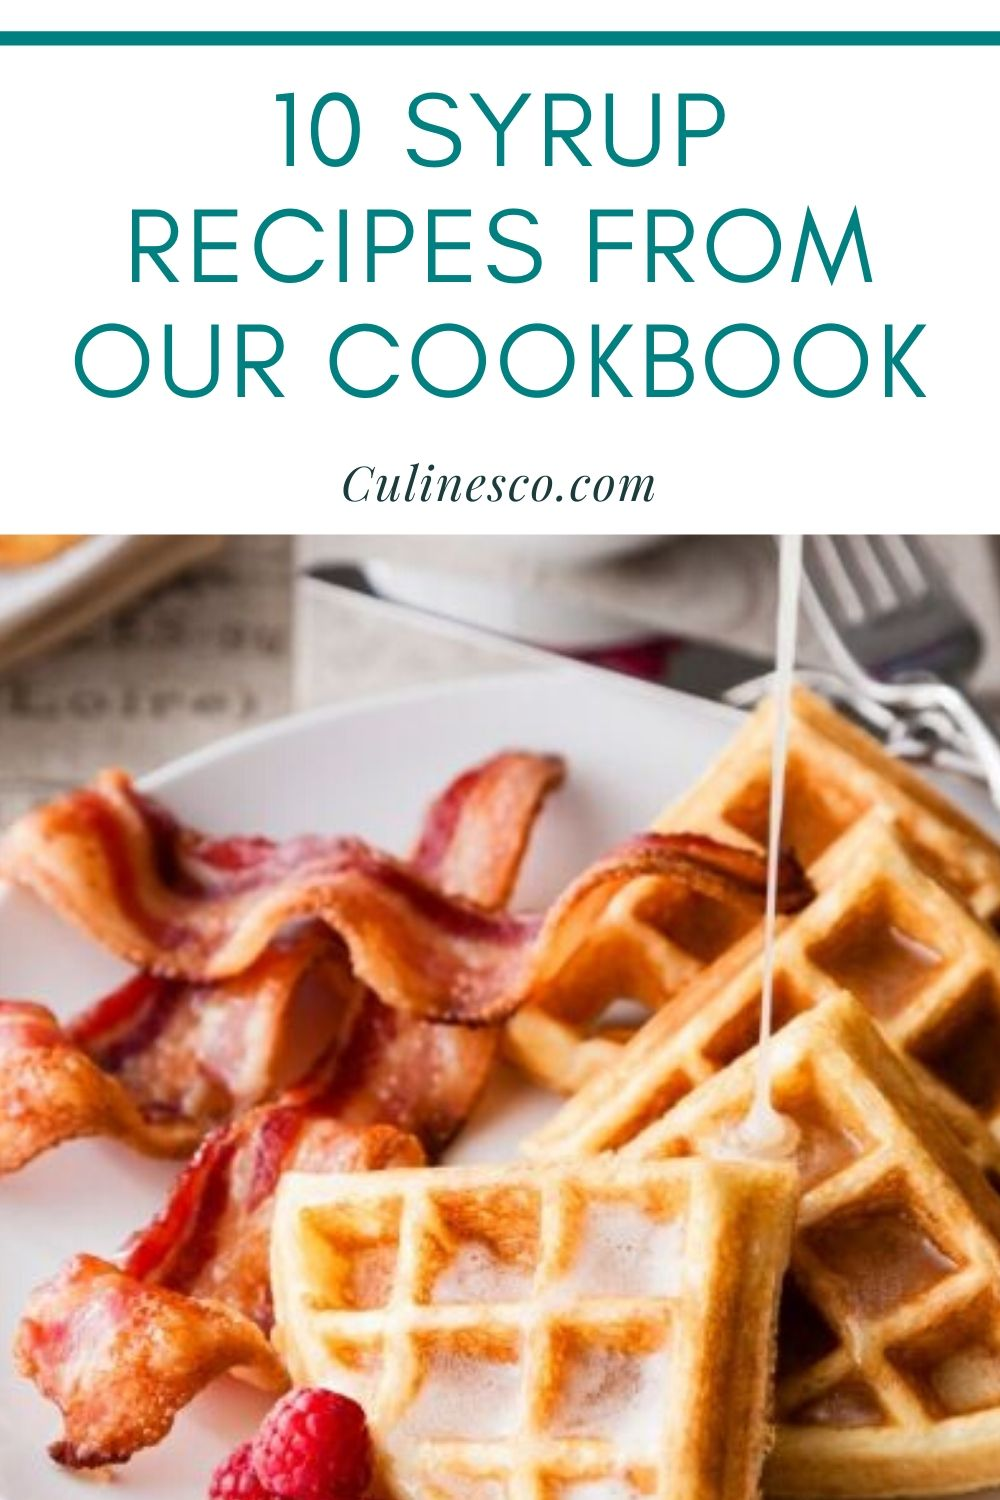 Get a sneak peek into 10 syrup recipes that appear in our cookbook. You will love to drip and drizzle these sweet syrups over waffles, ice cream and more!